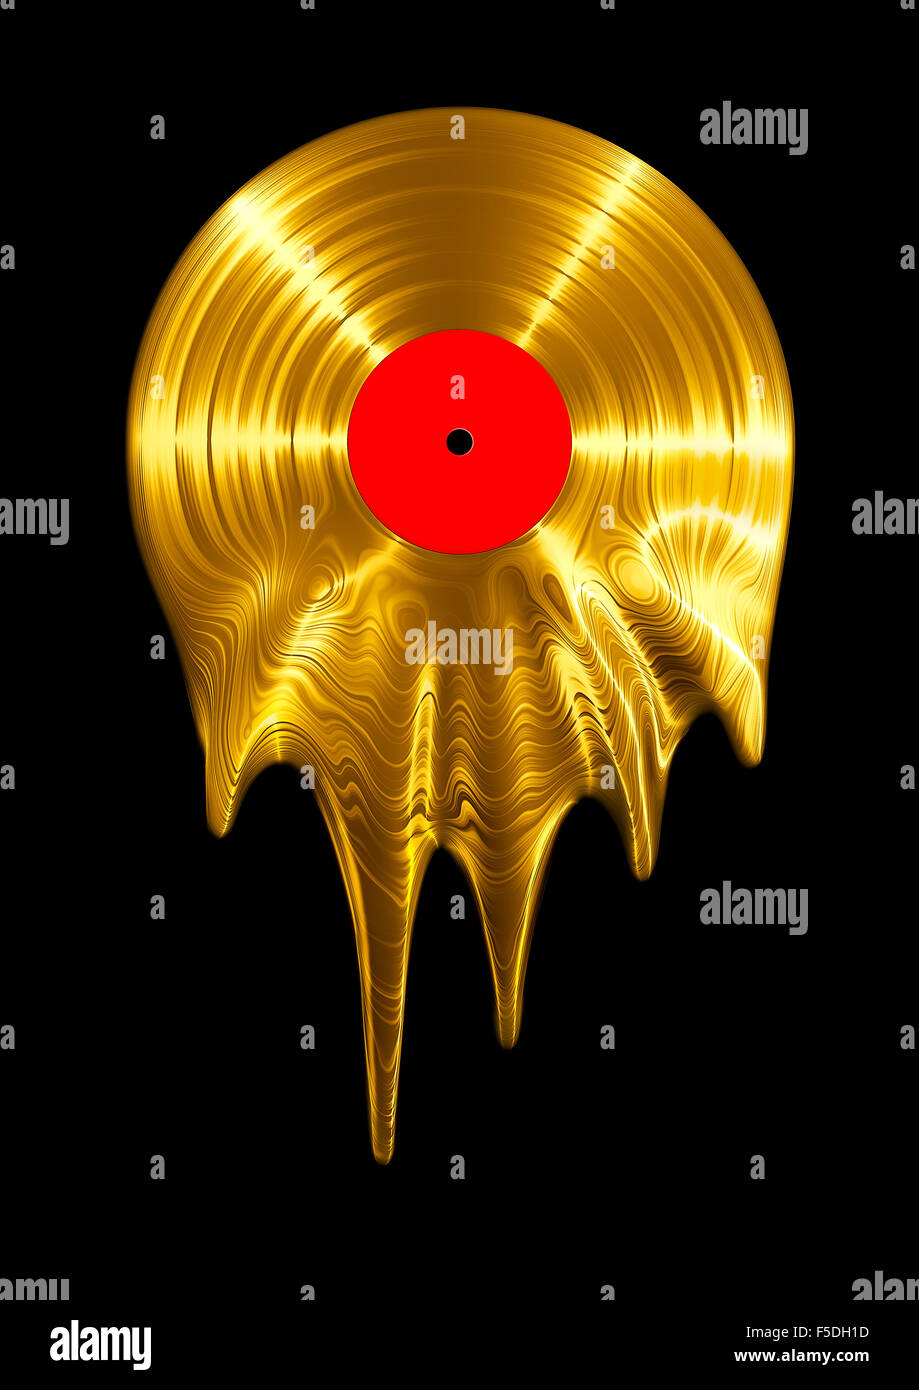 Melting gold vinyl record / 3D render of vinyl record melting - Stock Image